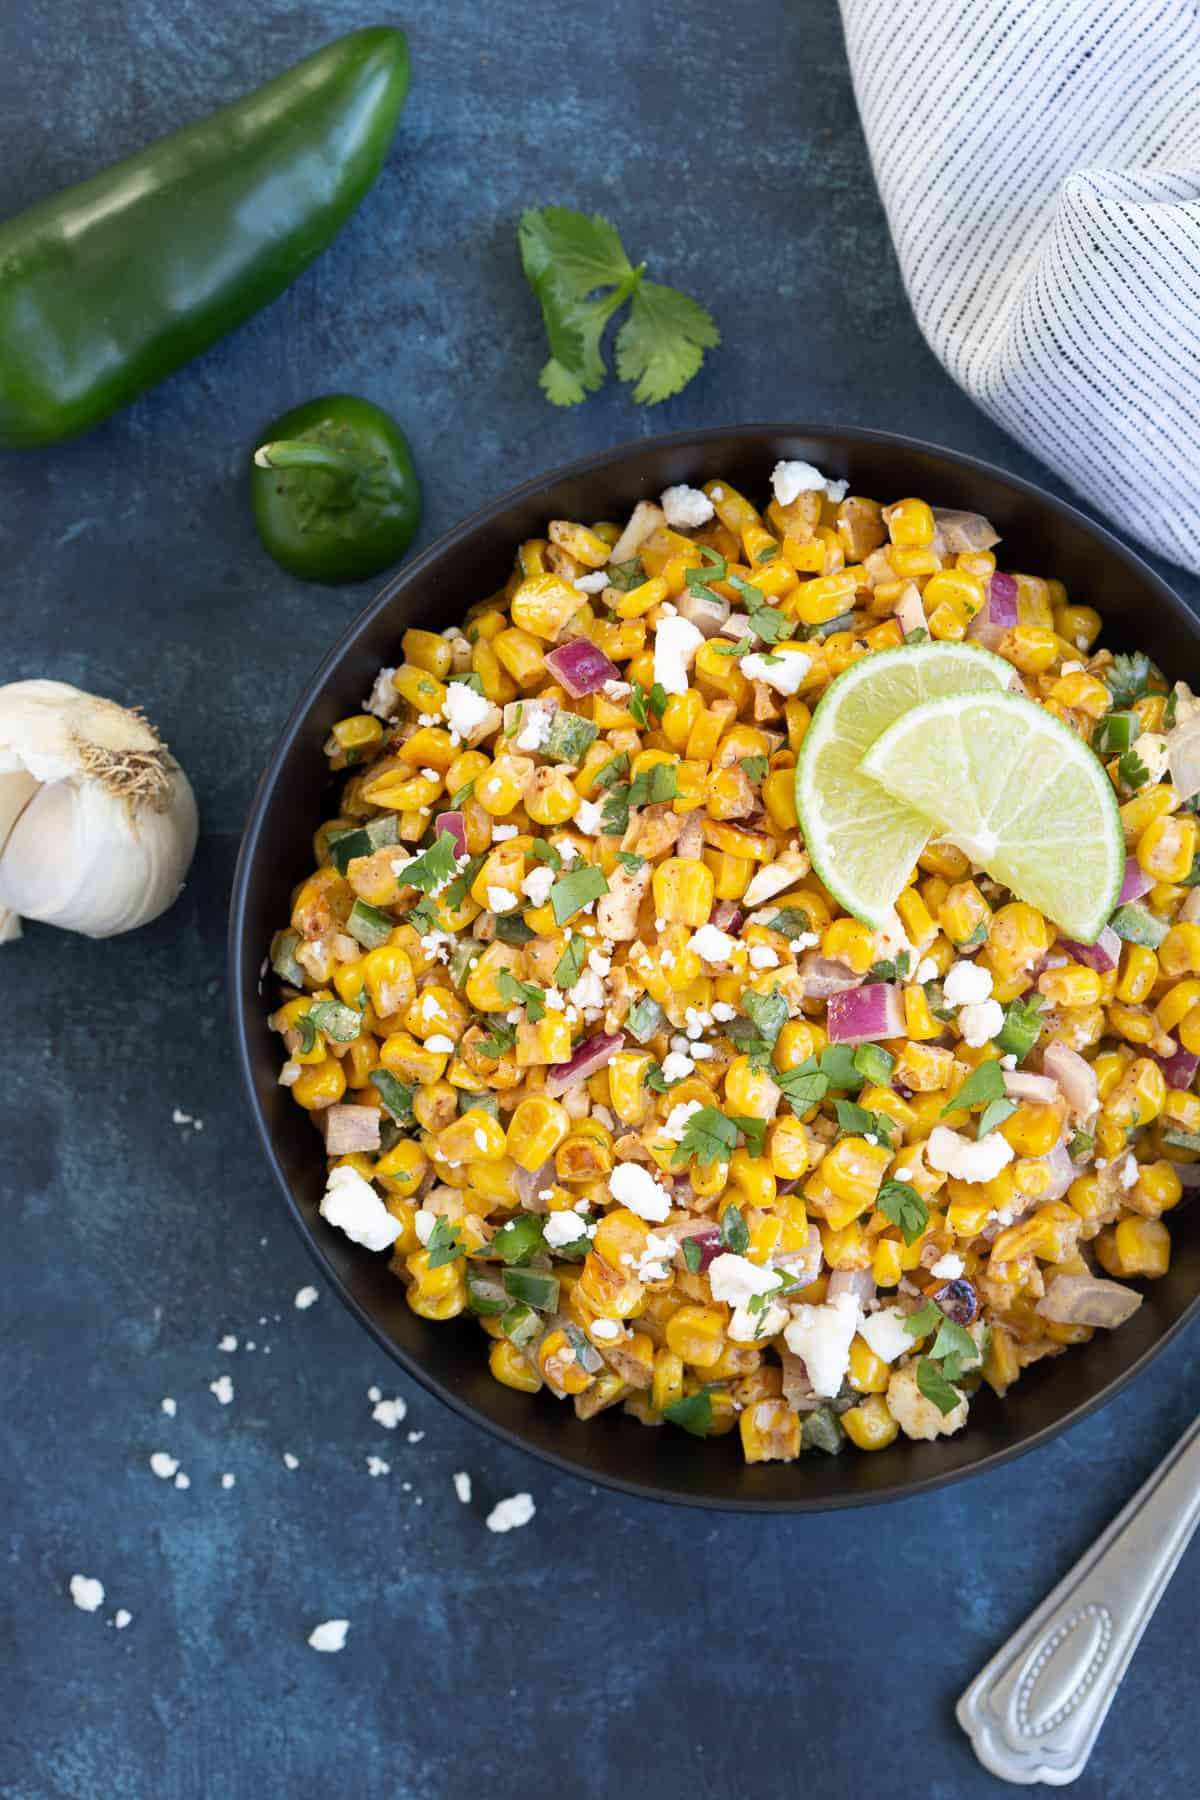 Overhead view of Mexican corn salad in a black bowl on a blue surface.